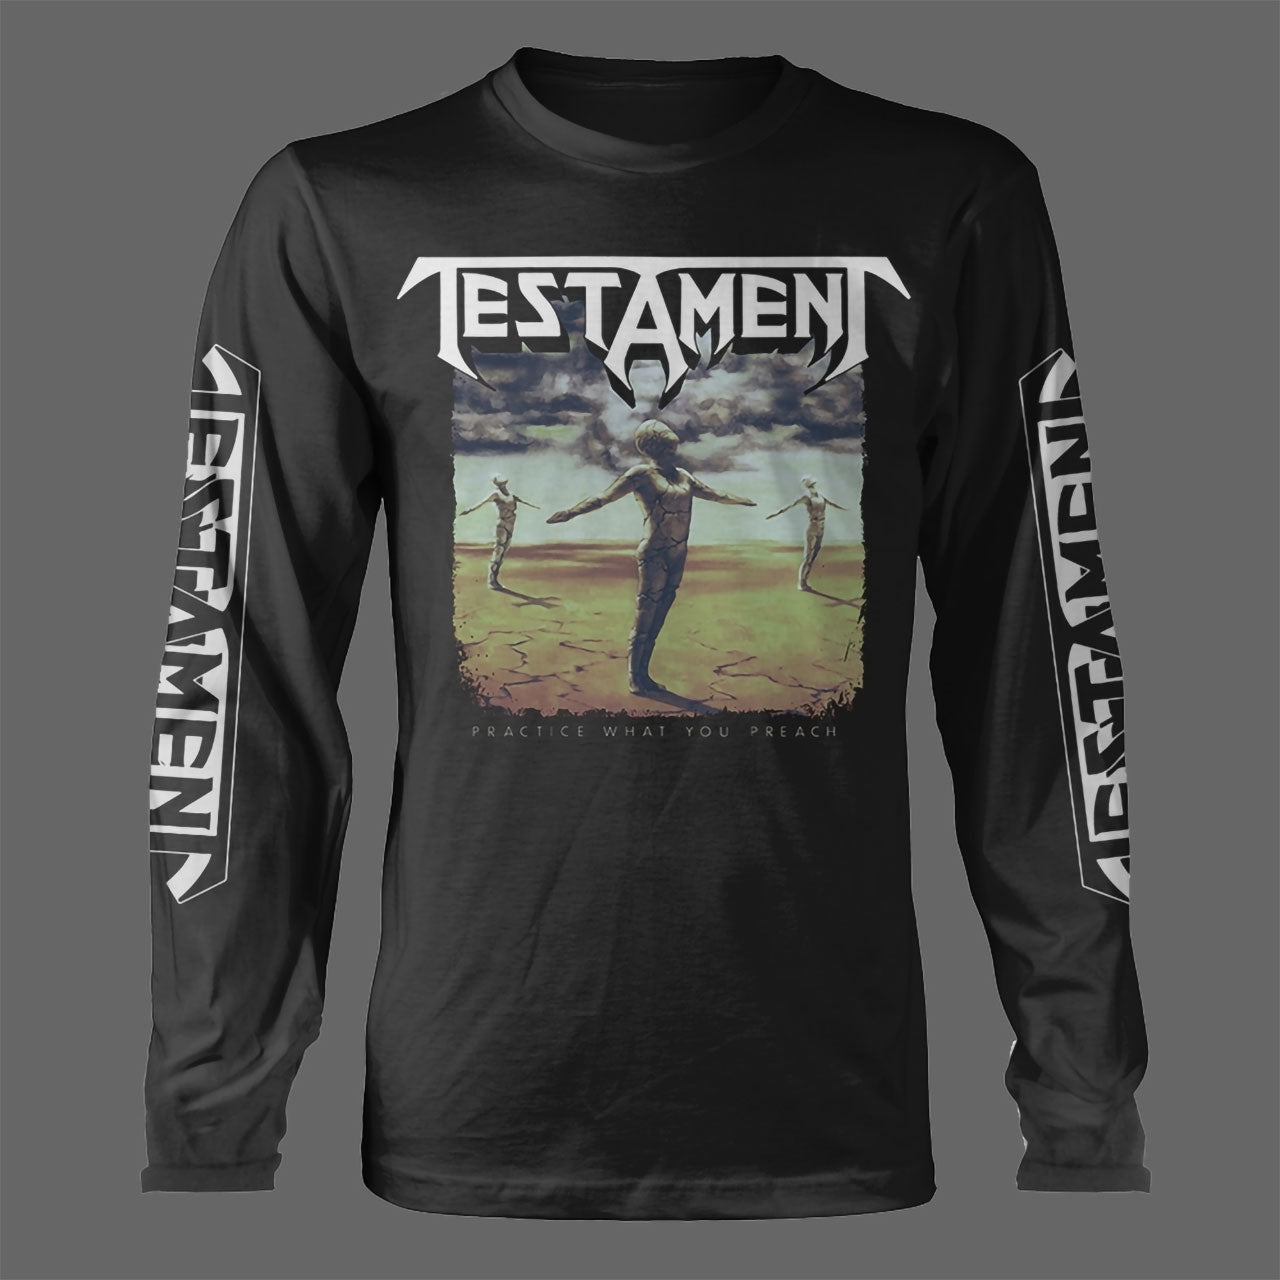 Testament - Practice What You Preach (Long Sleeve T-Shirt)